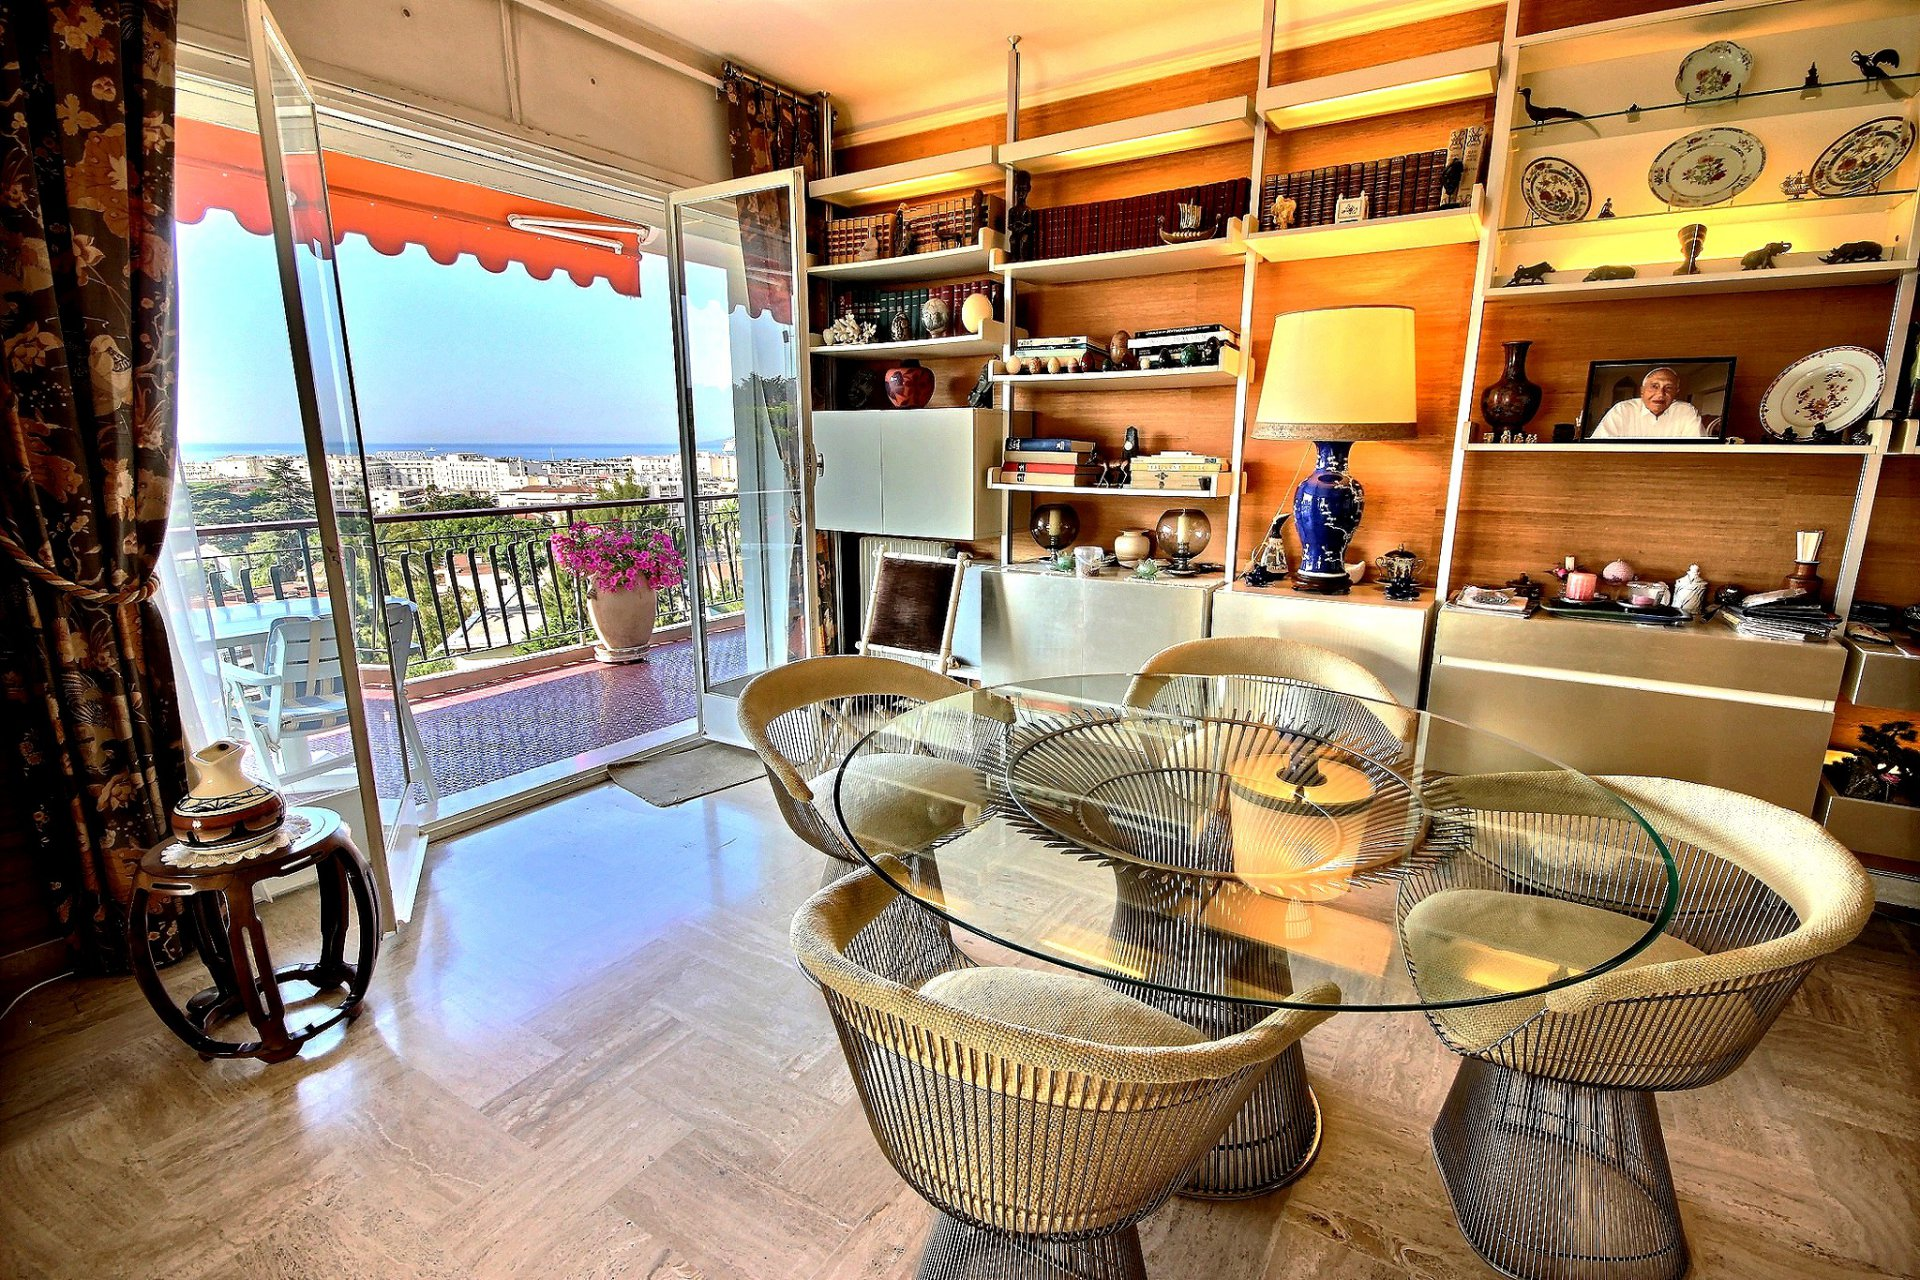 Cannes Basse Californie property for sale with sea view